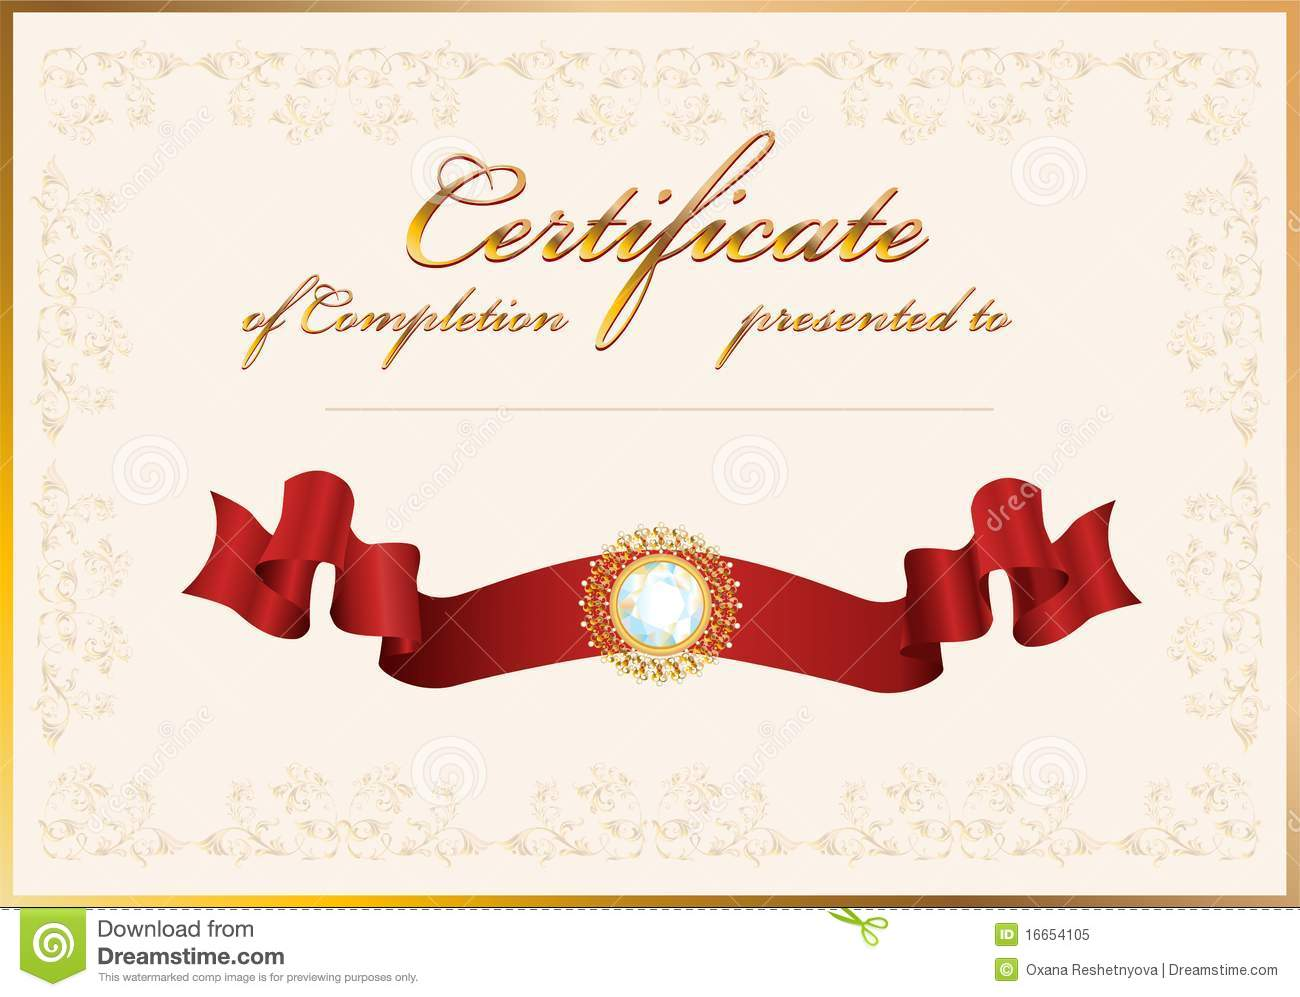 Certificate of completiontemplate stock vector illustration of certificate of completiontemplate yadclub Image collections